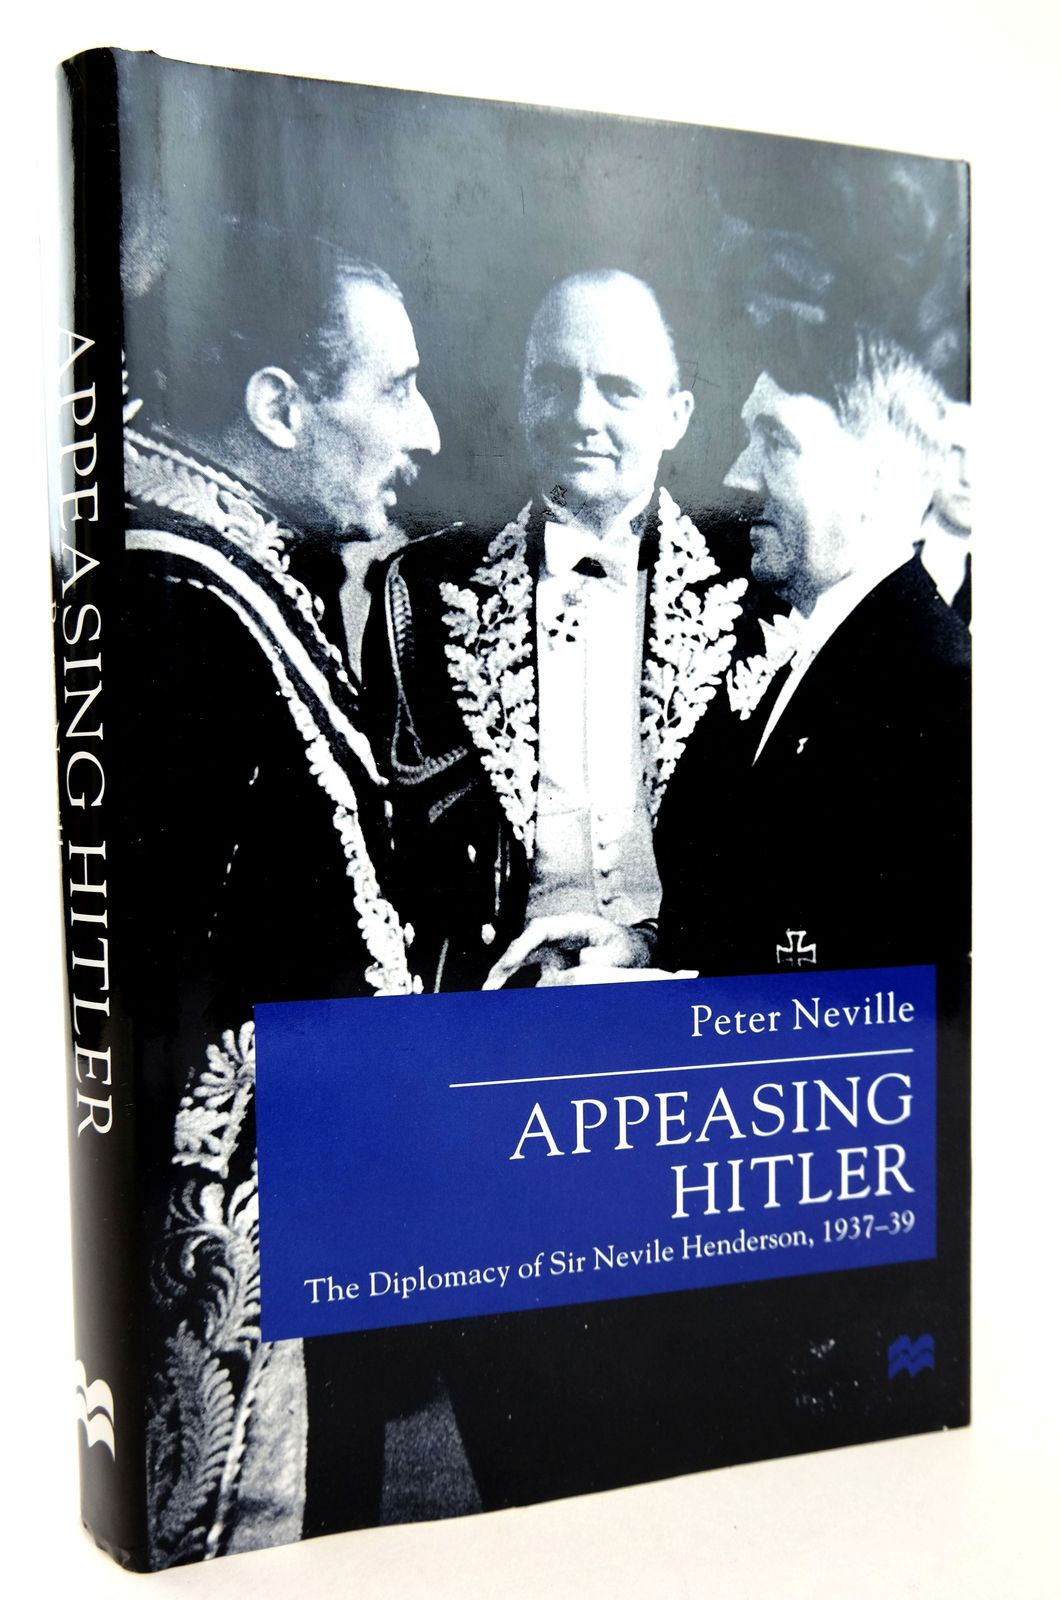 Photo of APPEASING HITLER: THE DIPLOMACY OF SIR NEVILE HENDERSON, 1937-39 written by Neville, Peter published by The Macmillan Press Ltd. (STOCK CODE: 1818769)  for sale by Stella & Rose's Books